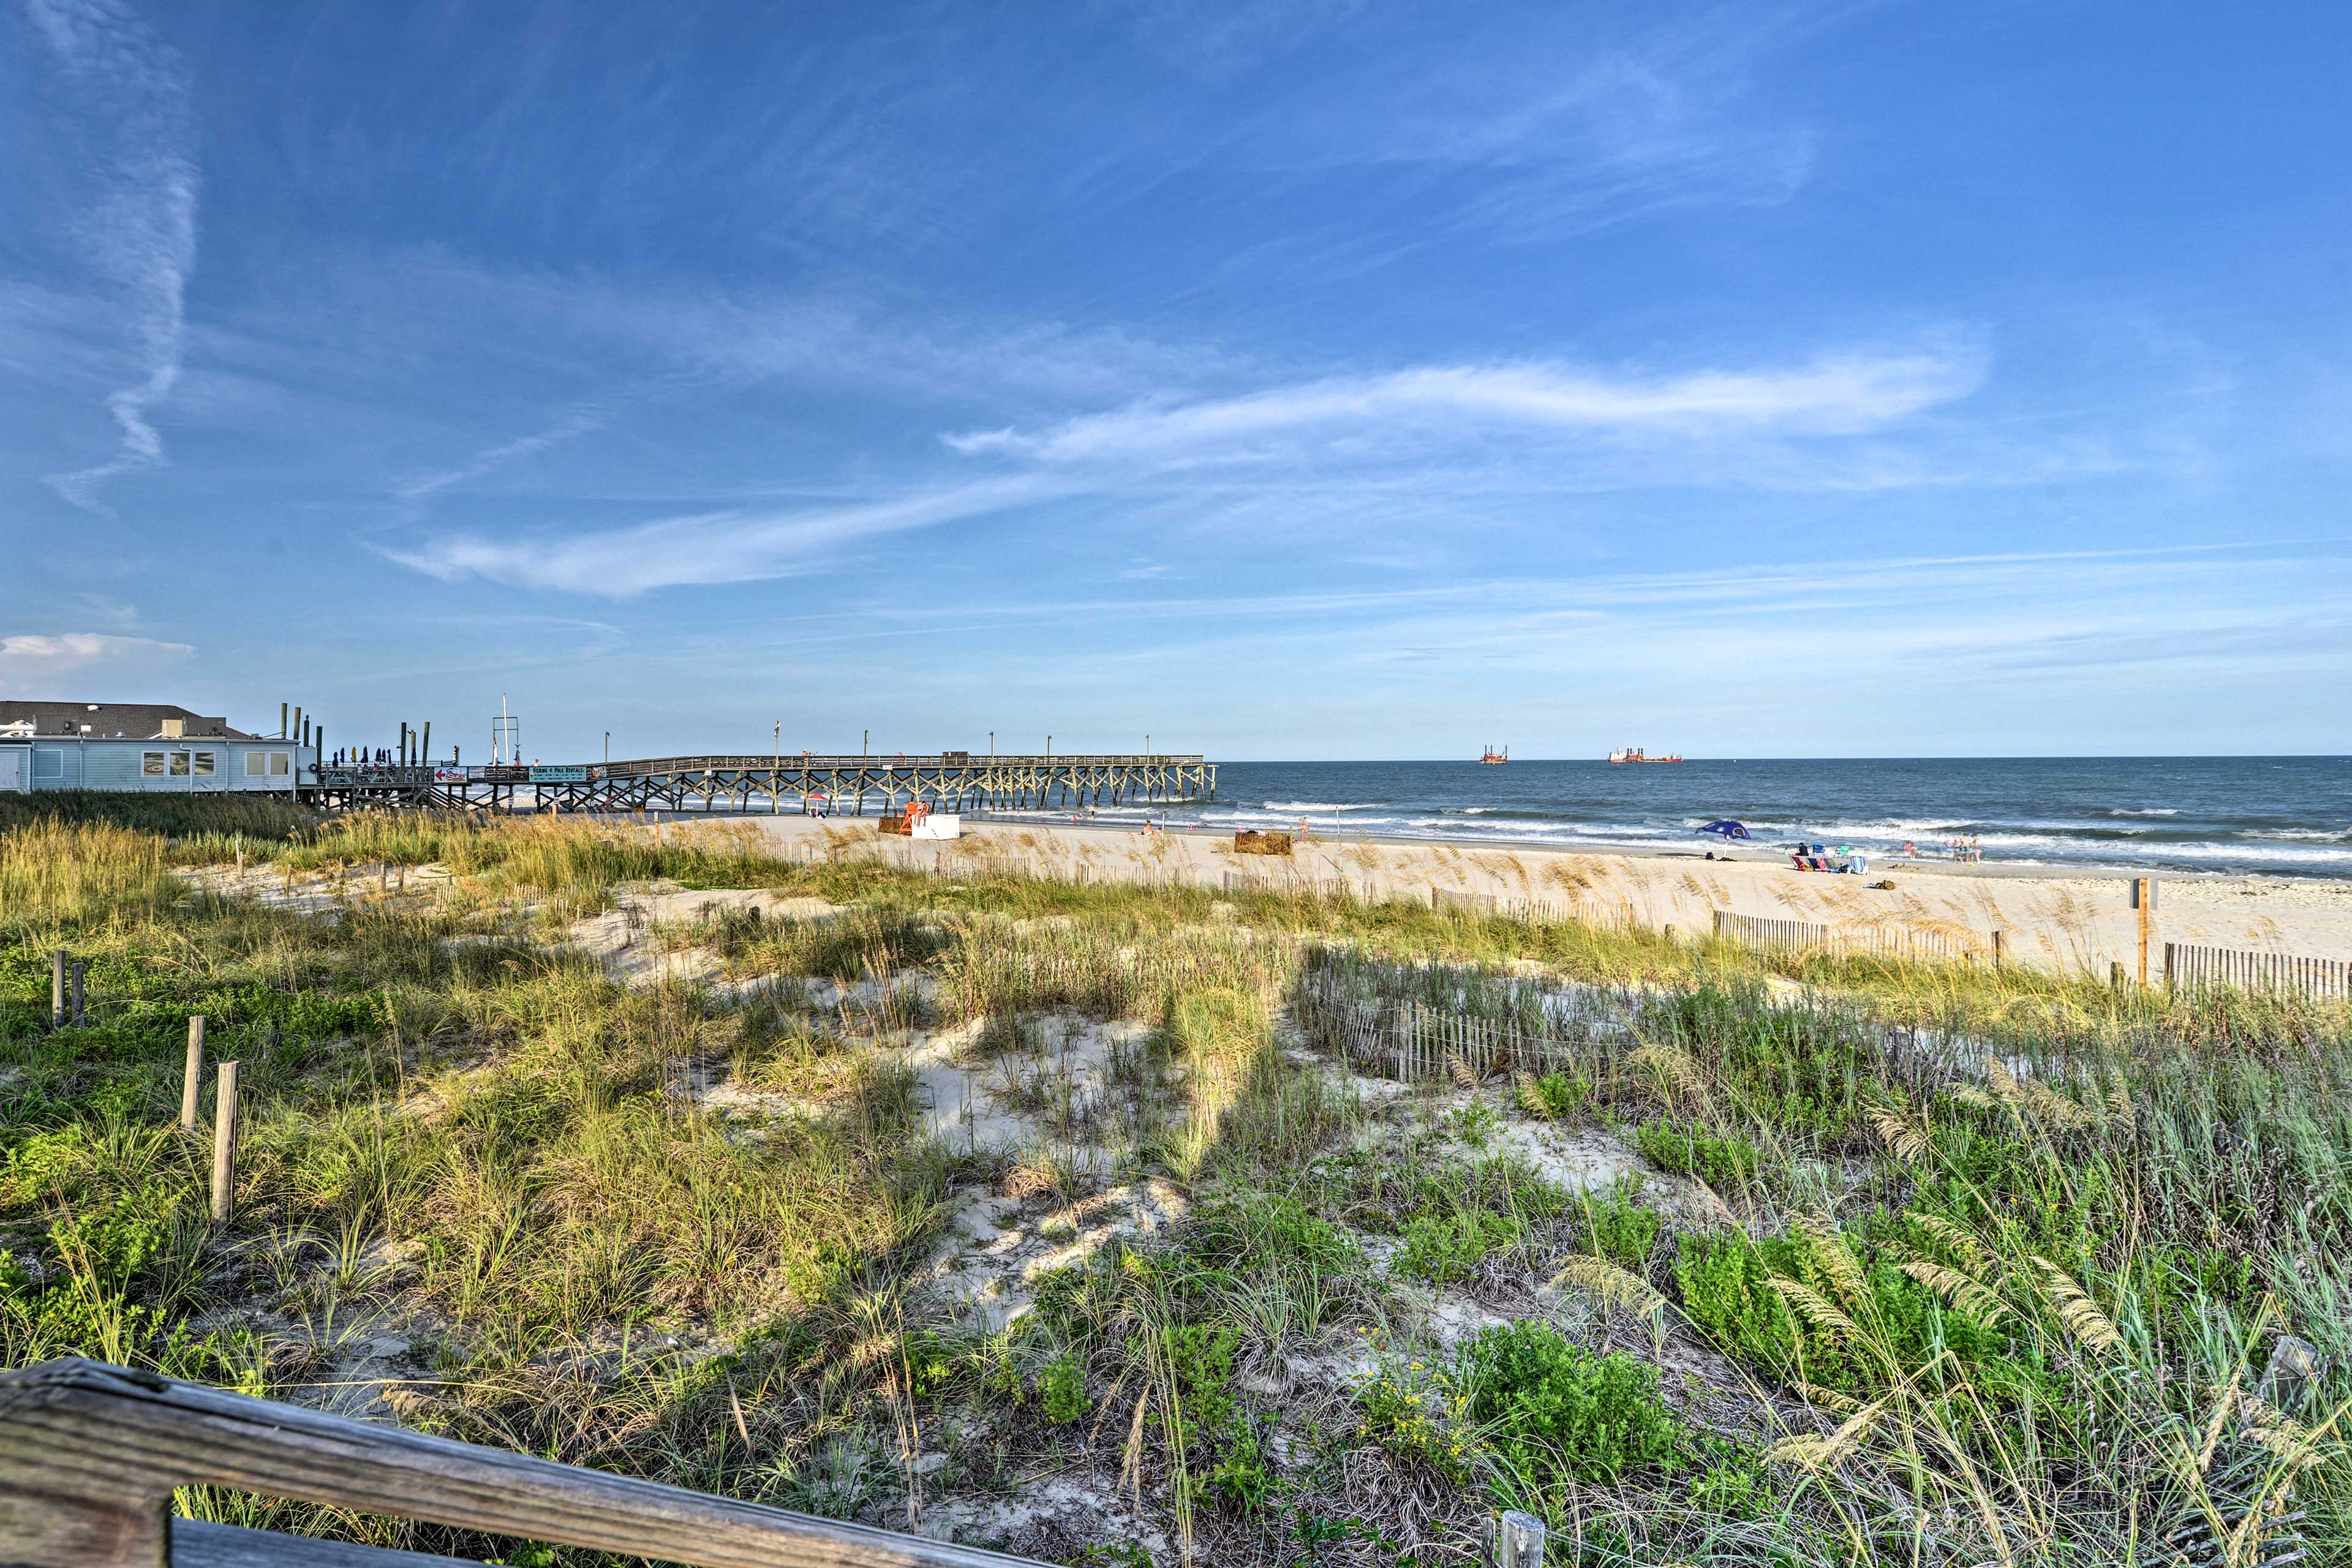 The Surfside Pier, restaurants, and oceanfront bars are just a quick trip away.